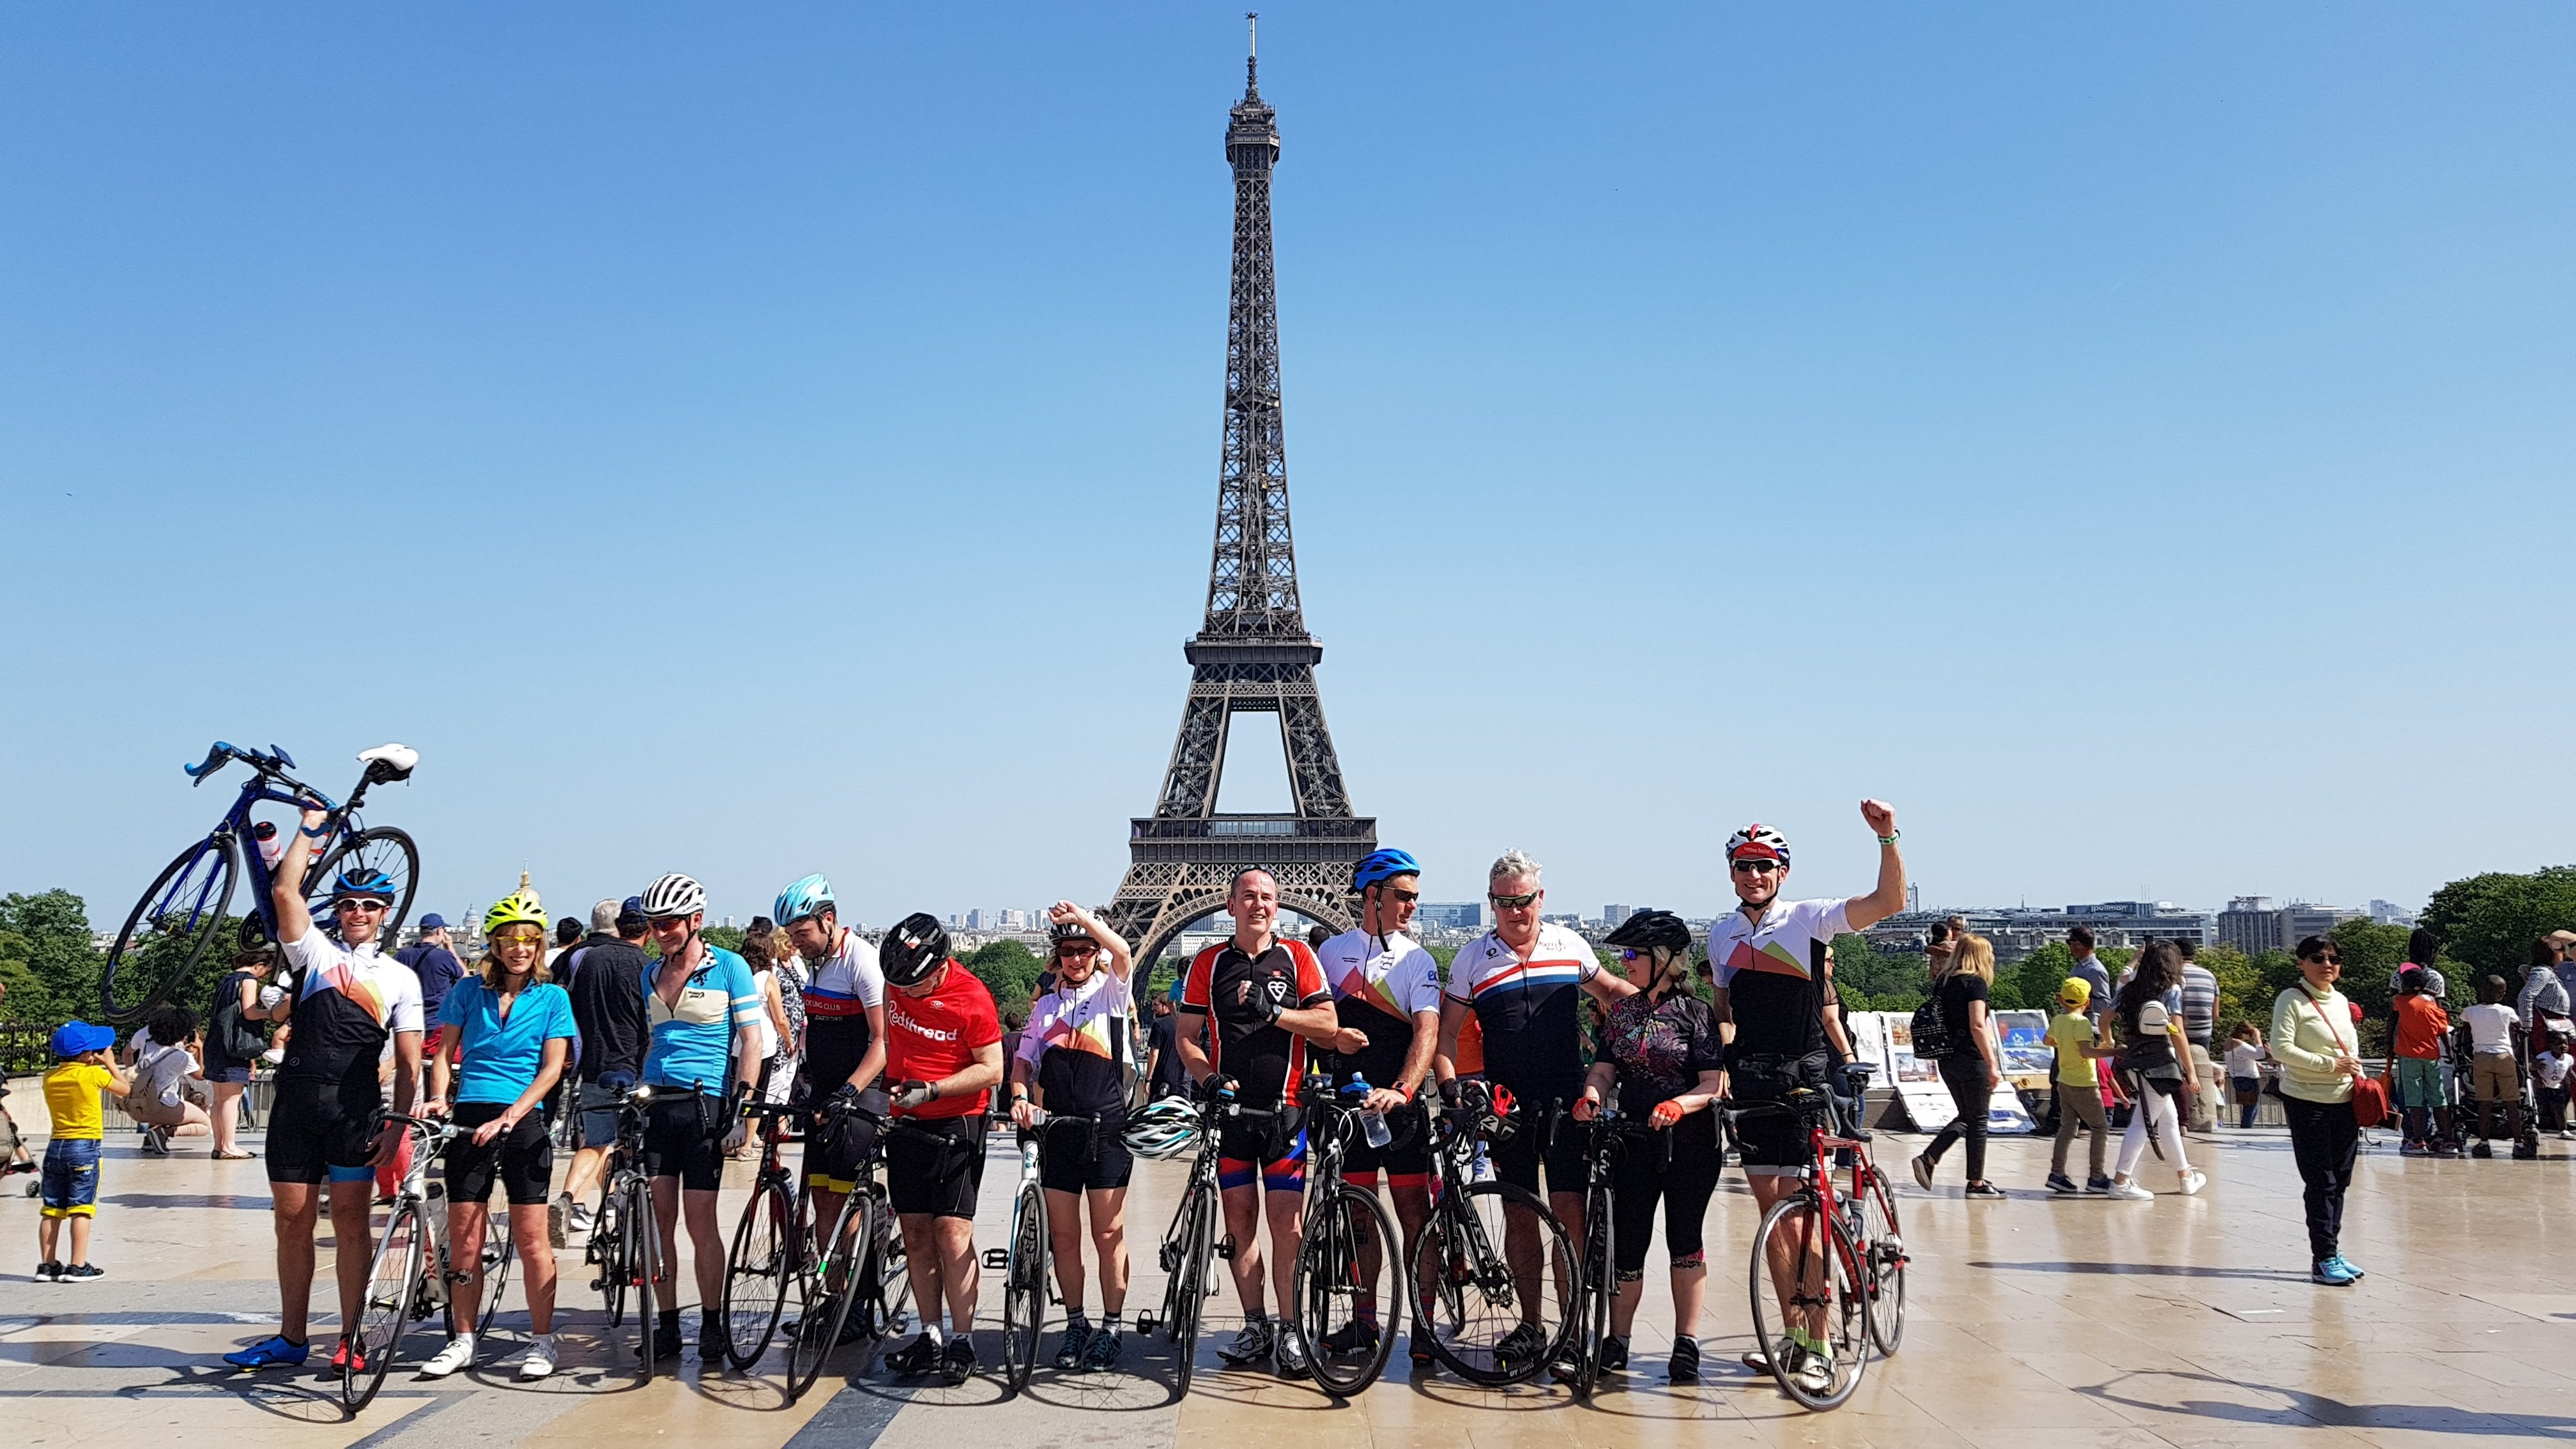 Cyclists finish in Paris cycling the 3 day London to Paris bike ride